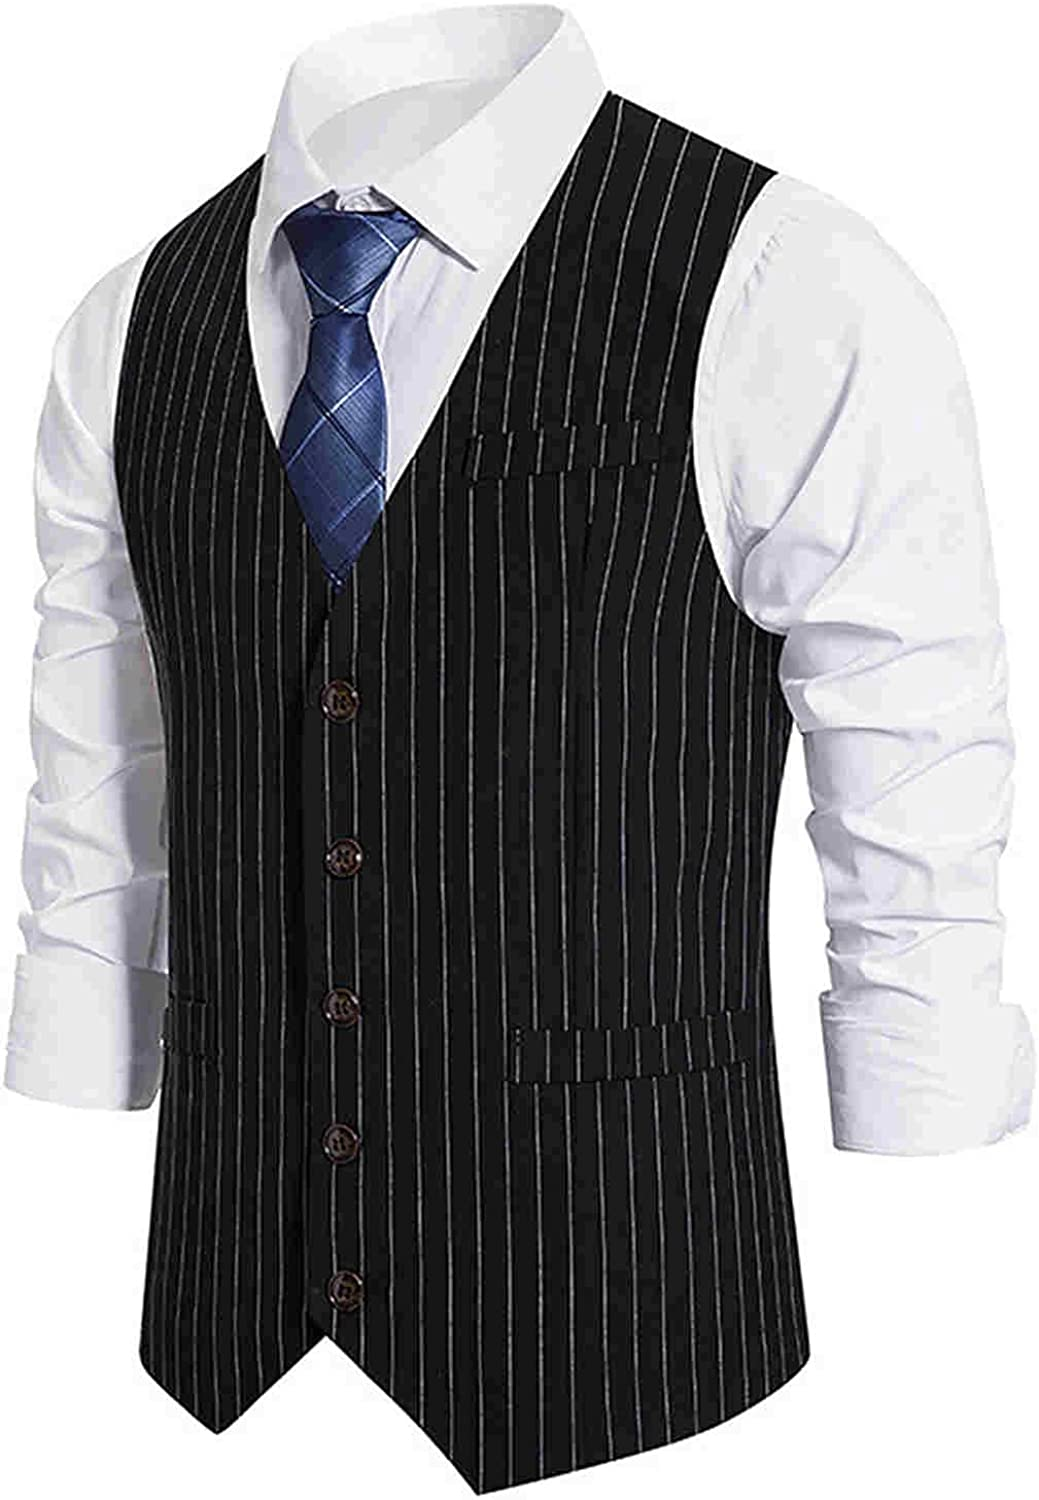 Digood Mens Gentleman Suit Autumn and Winter Casual Retro Striped Single-Breasted Suit Vest,Business Formal Suit